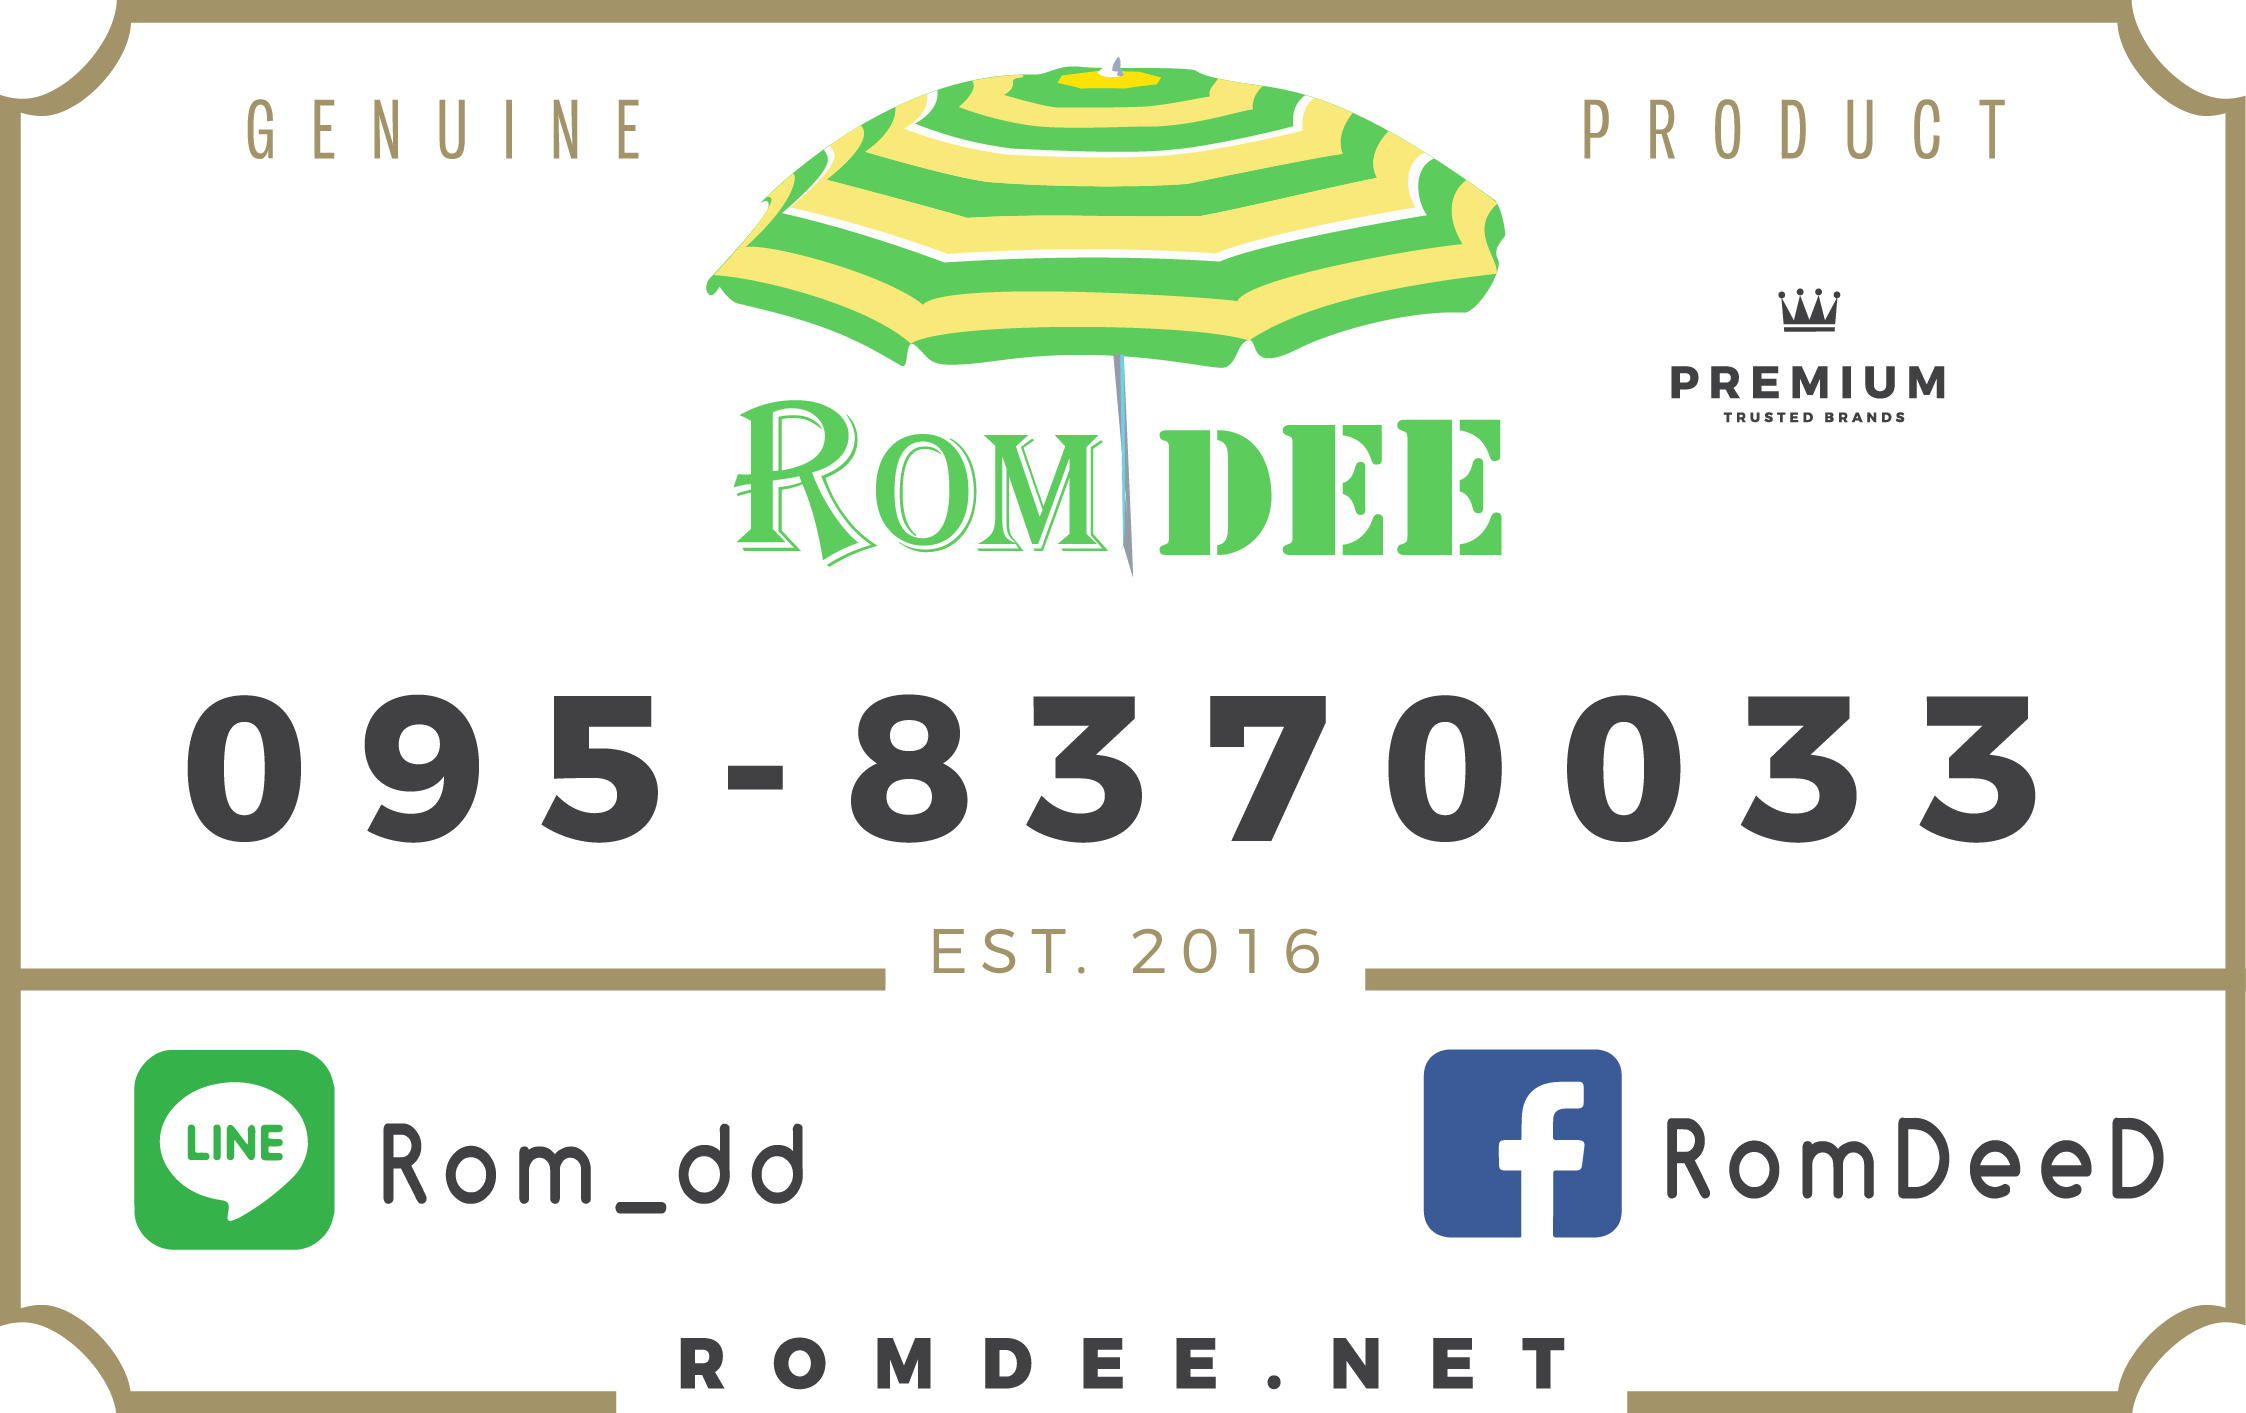 Romdee's Badge - Geniune Product